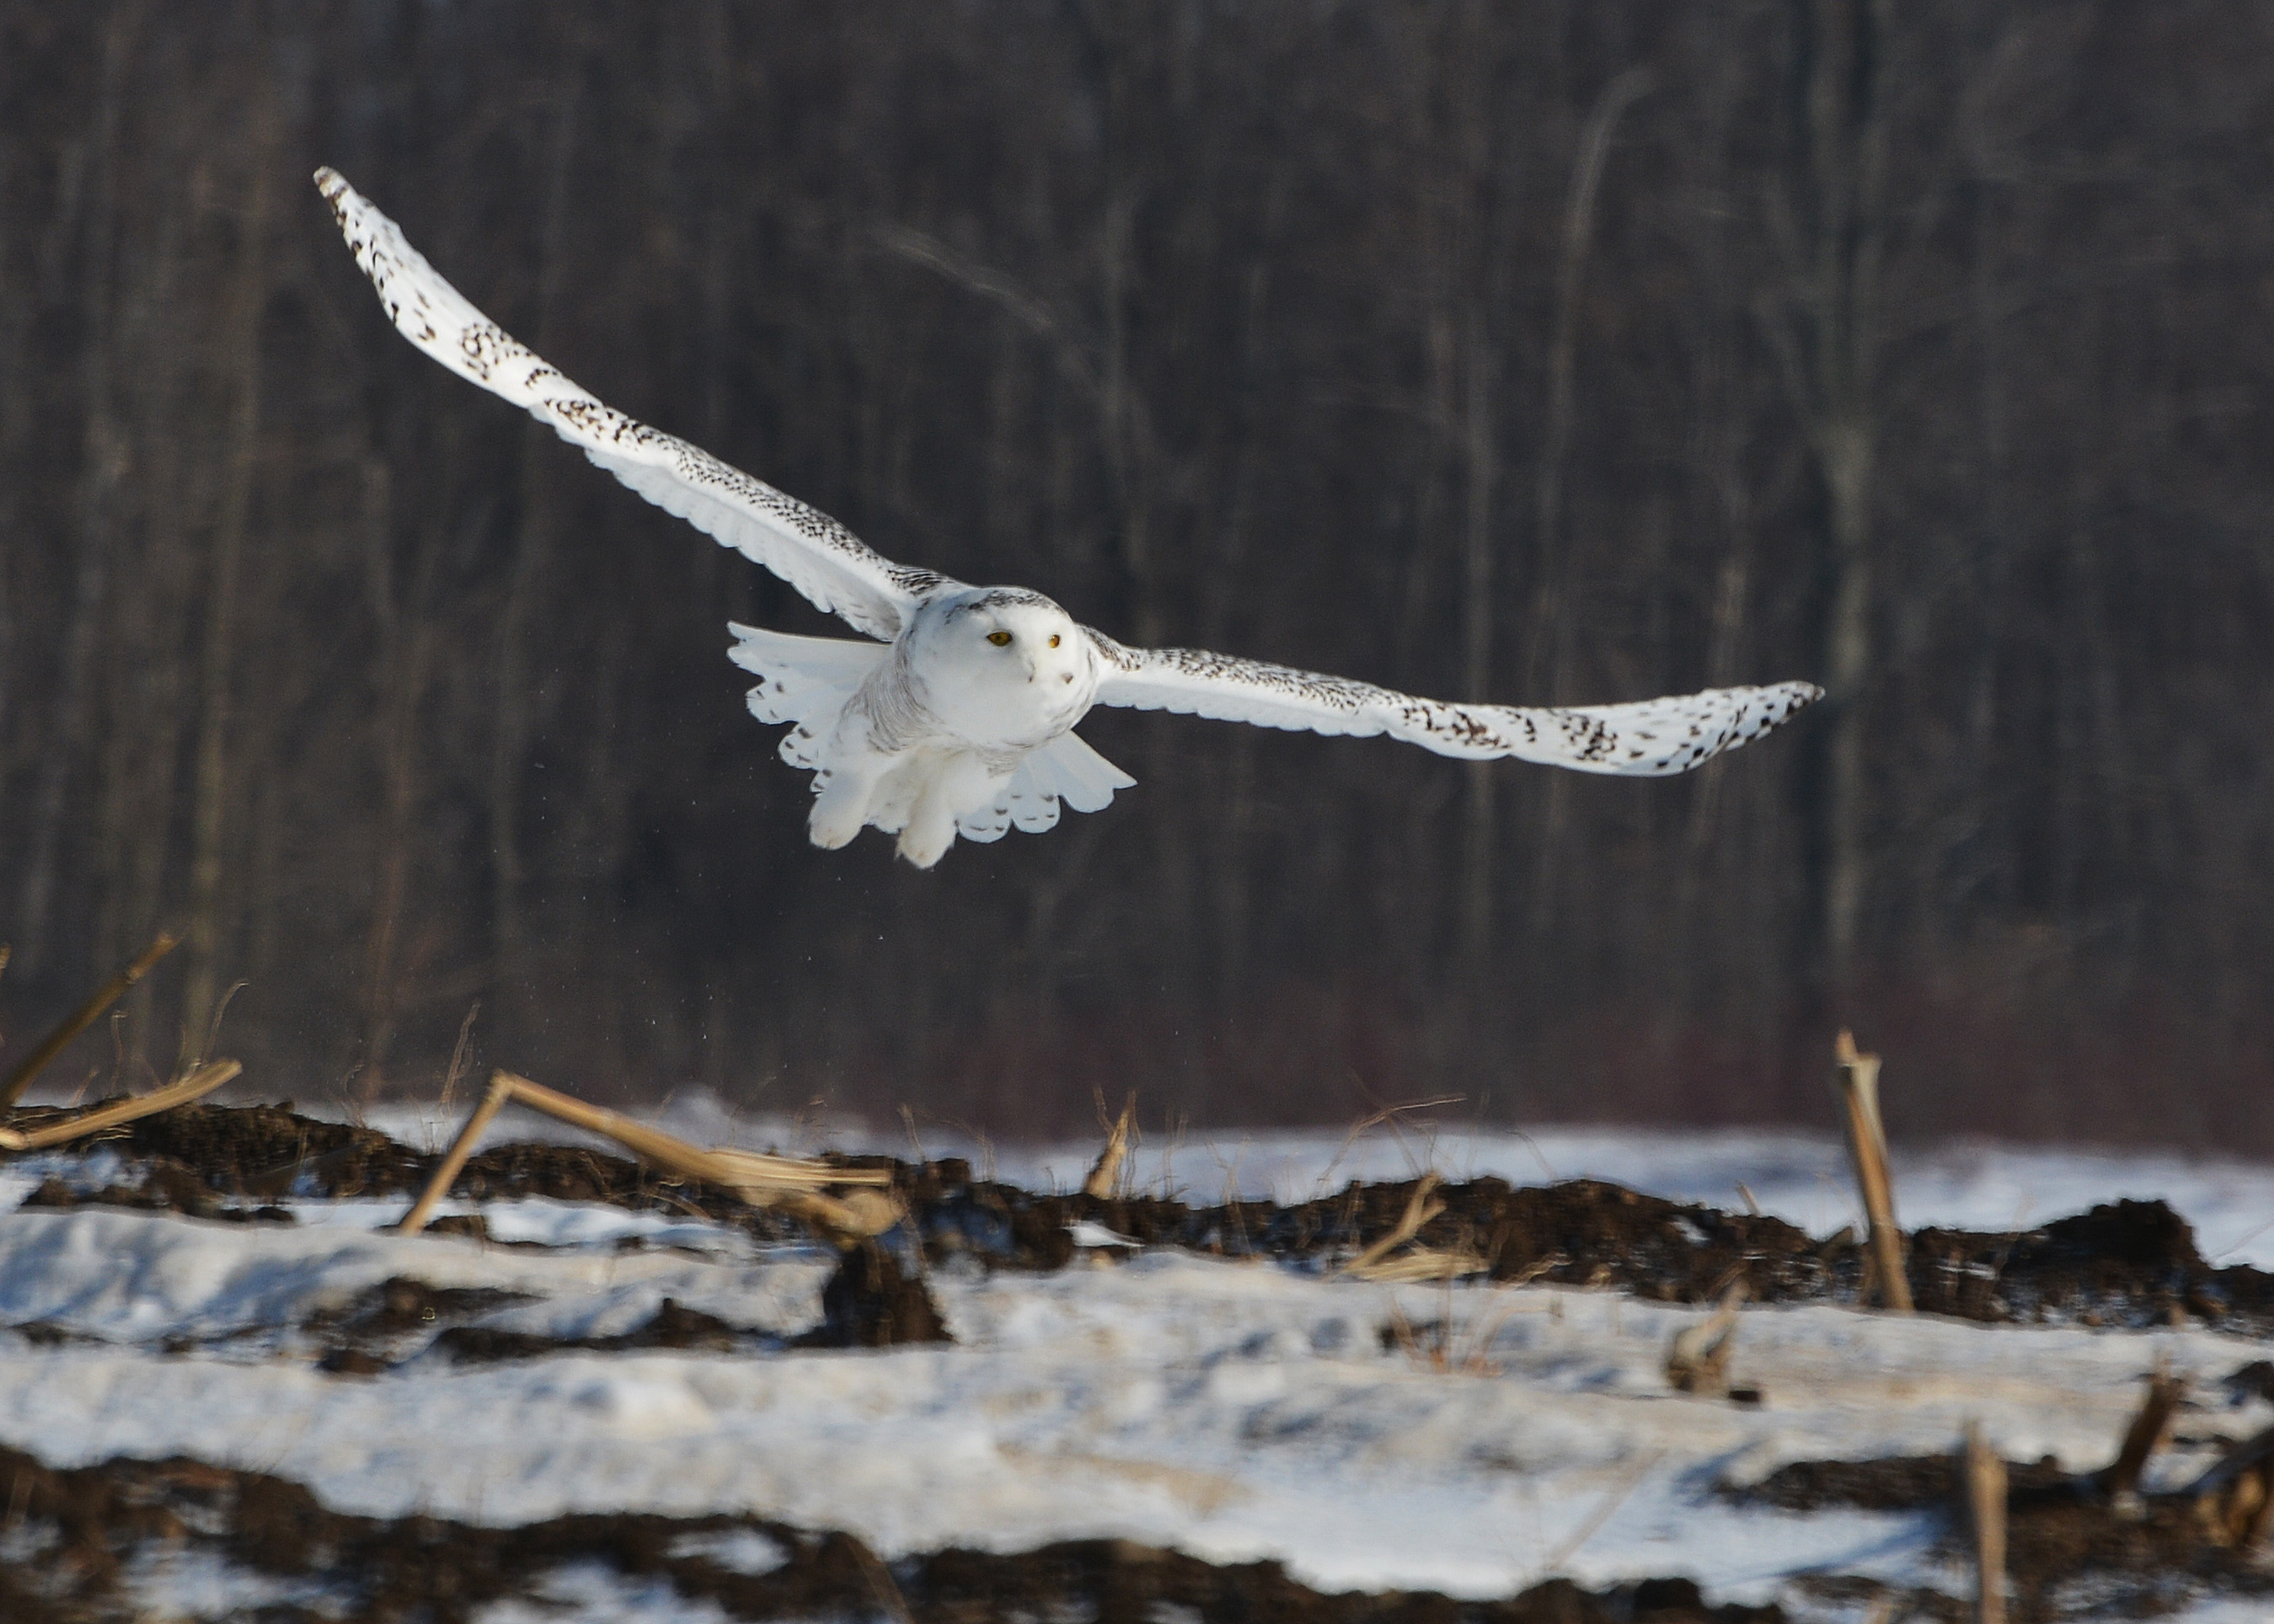 Snowy Owl hunting | Nick's Nature Pics